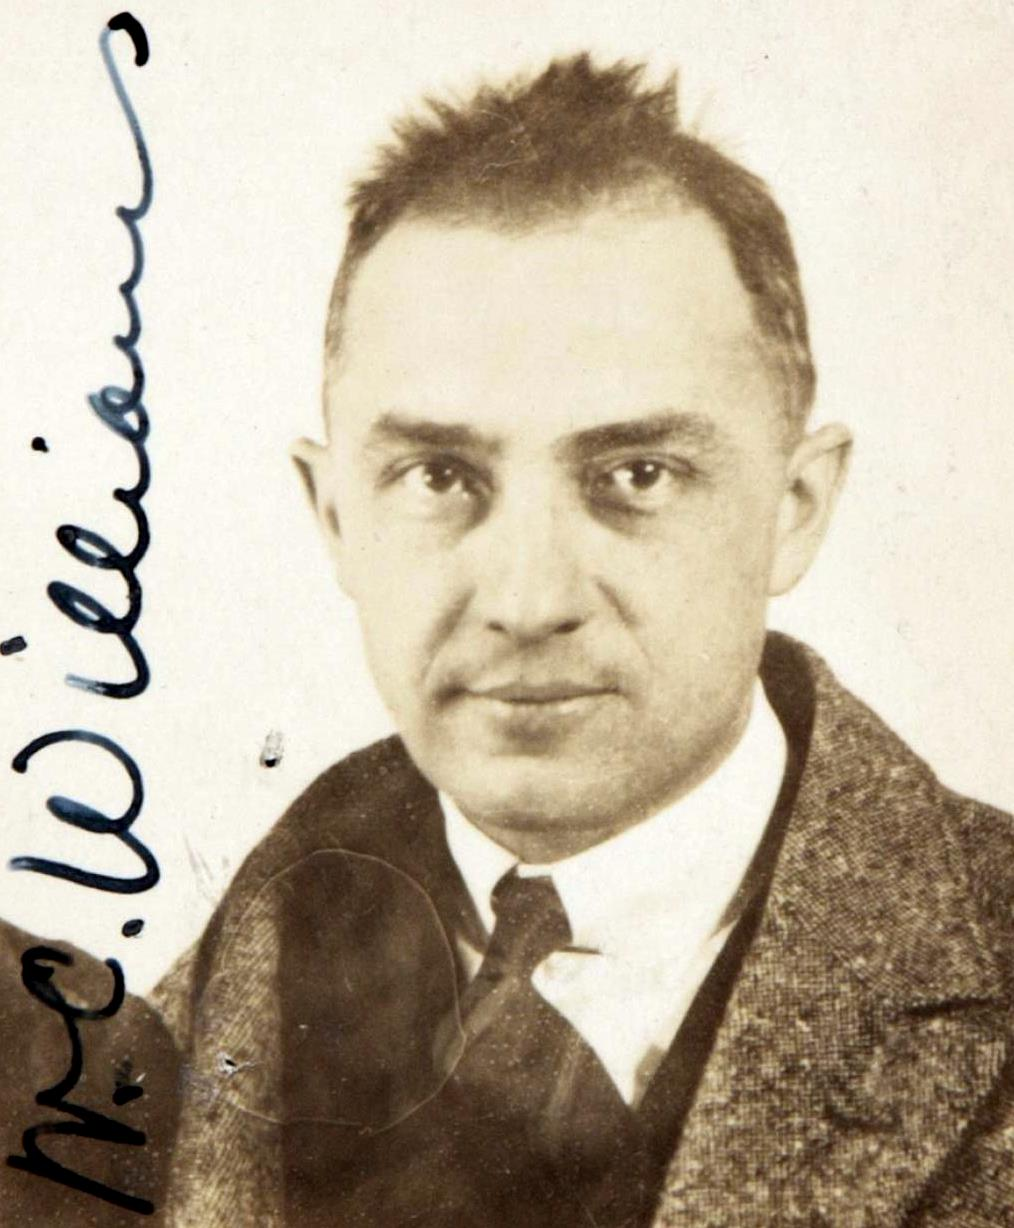 the dichotomy of america in the poetry of william carlos williams View: william carlos williams poems william carlos williams was born in rutherford, new jersey, in 1883 he began writing poetry while a student at horace mann high school, at which time he made the decision to become both a writer and a doctor.